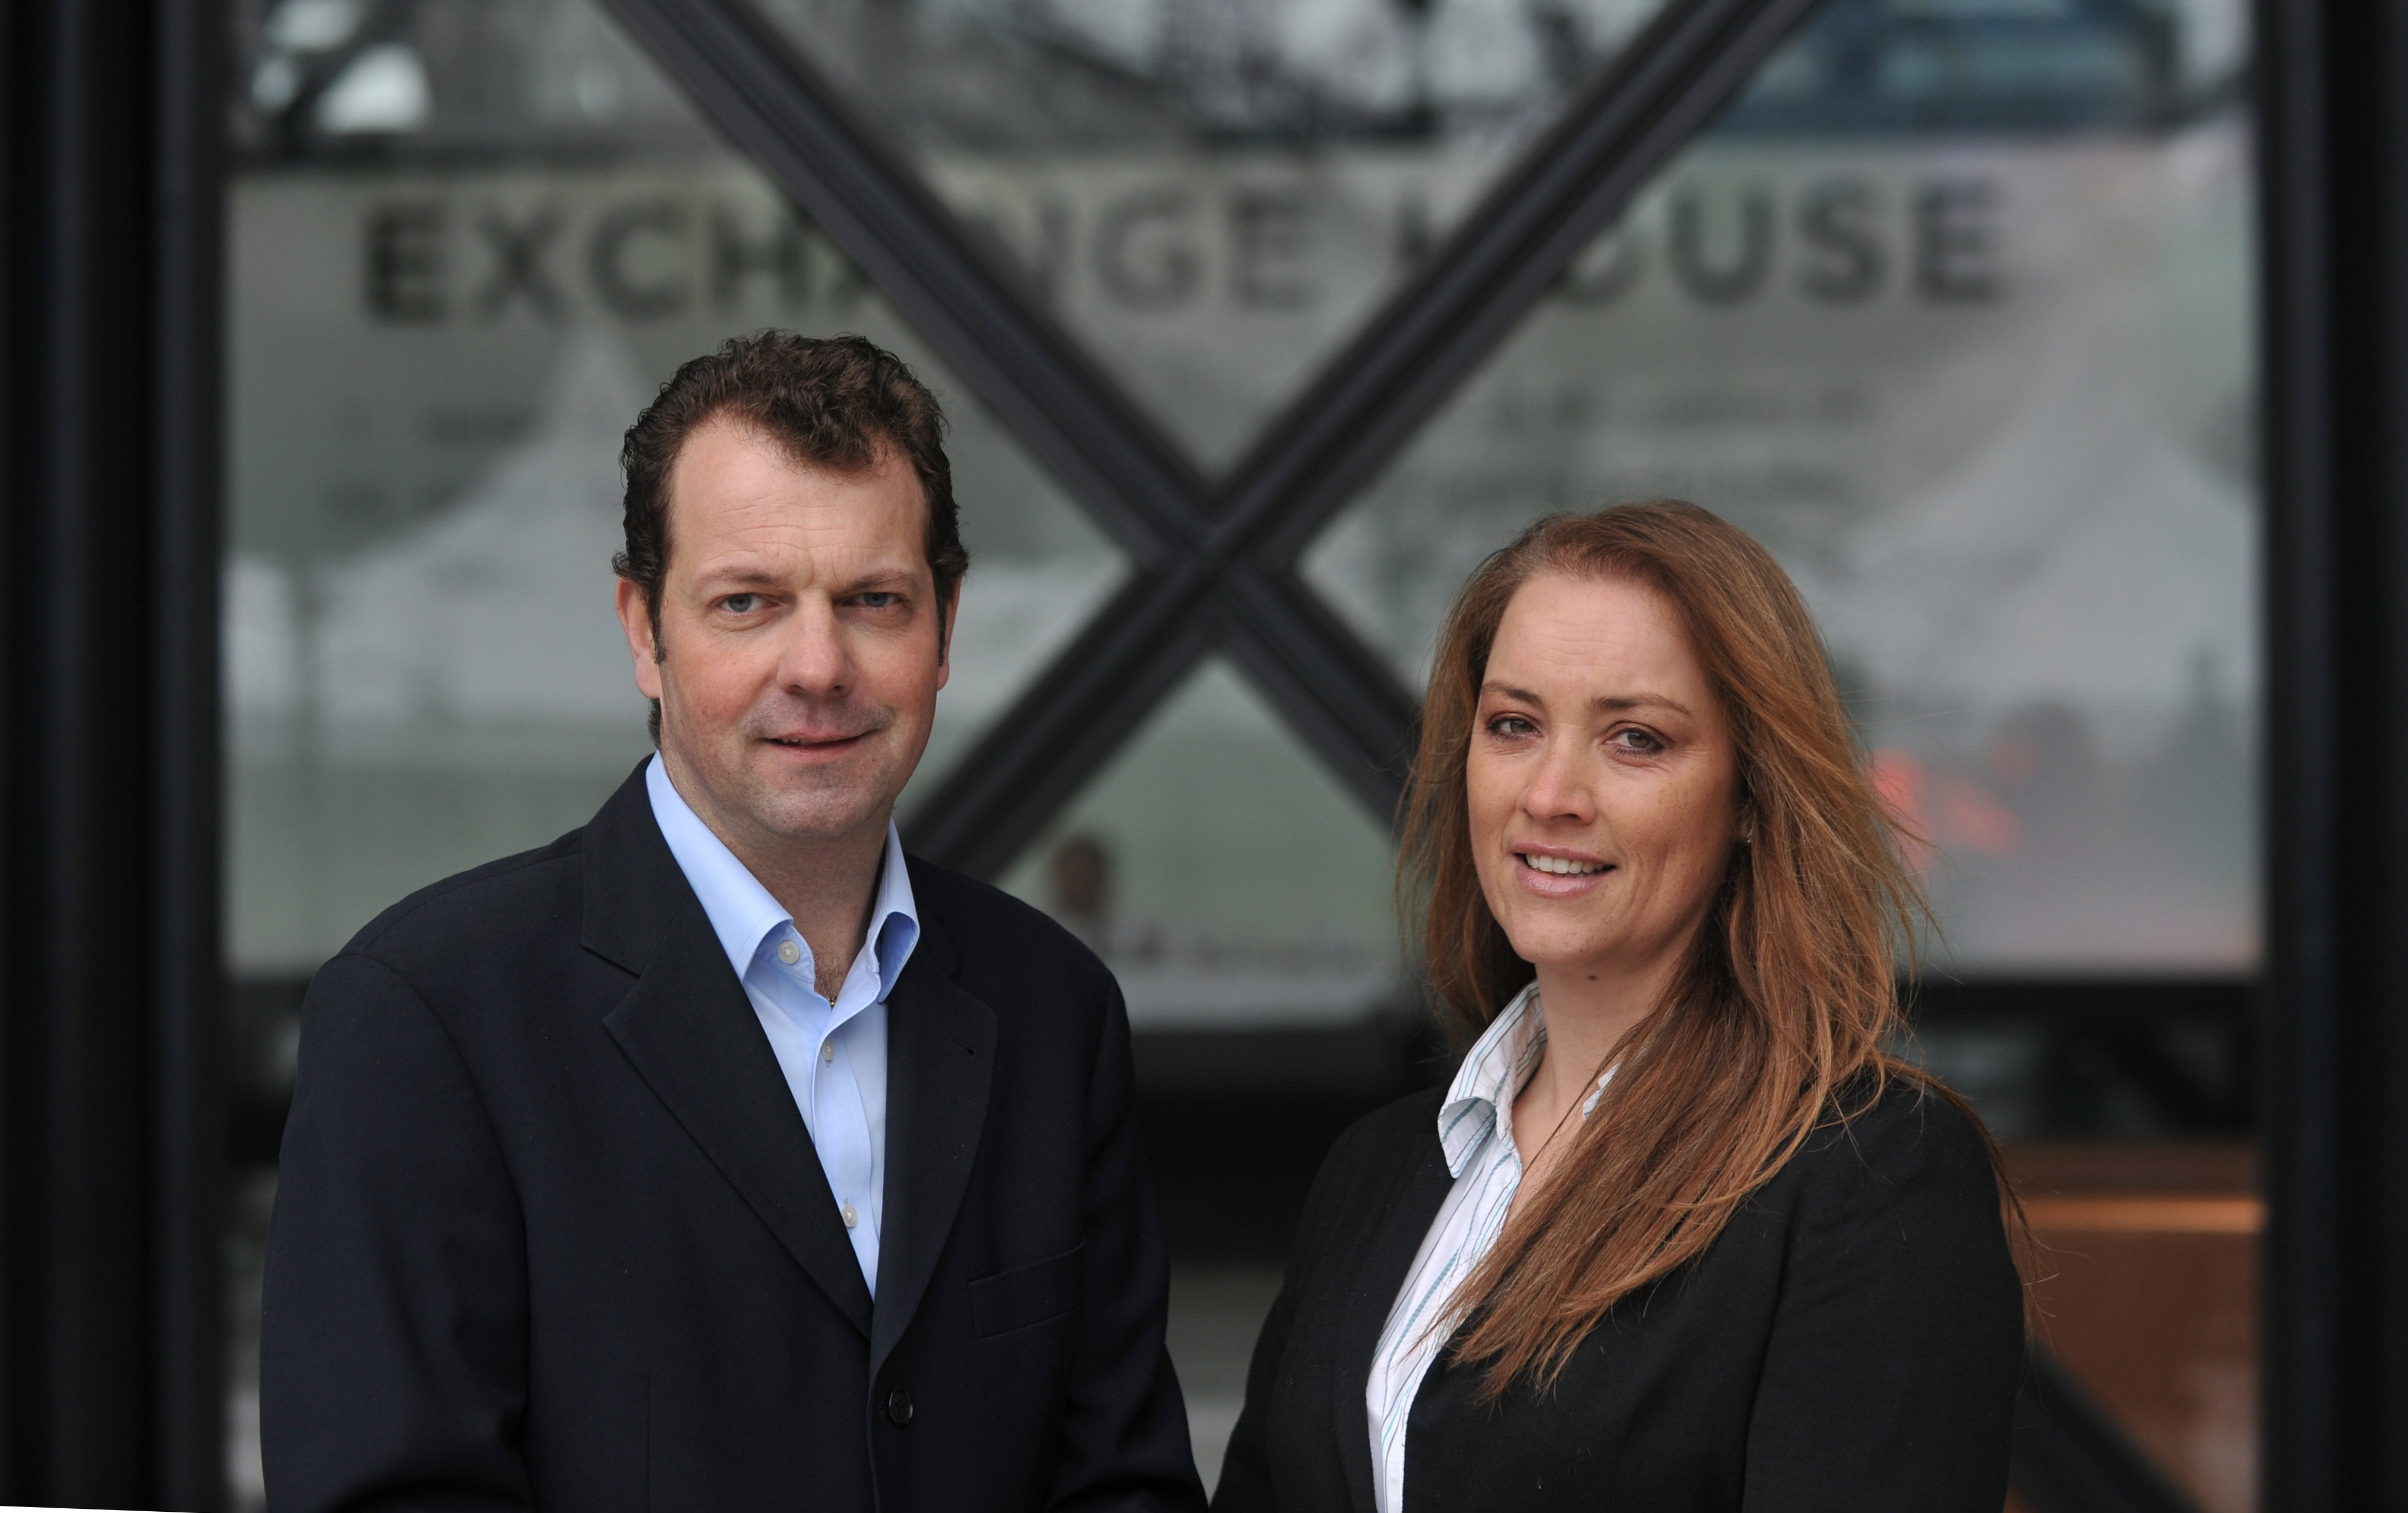 Leading London Property Company Selects Advanced